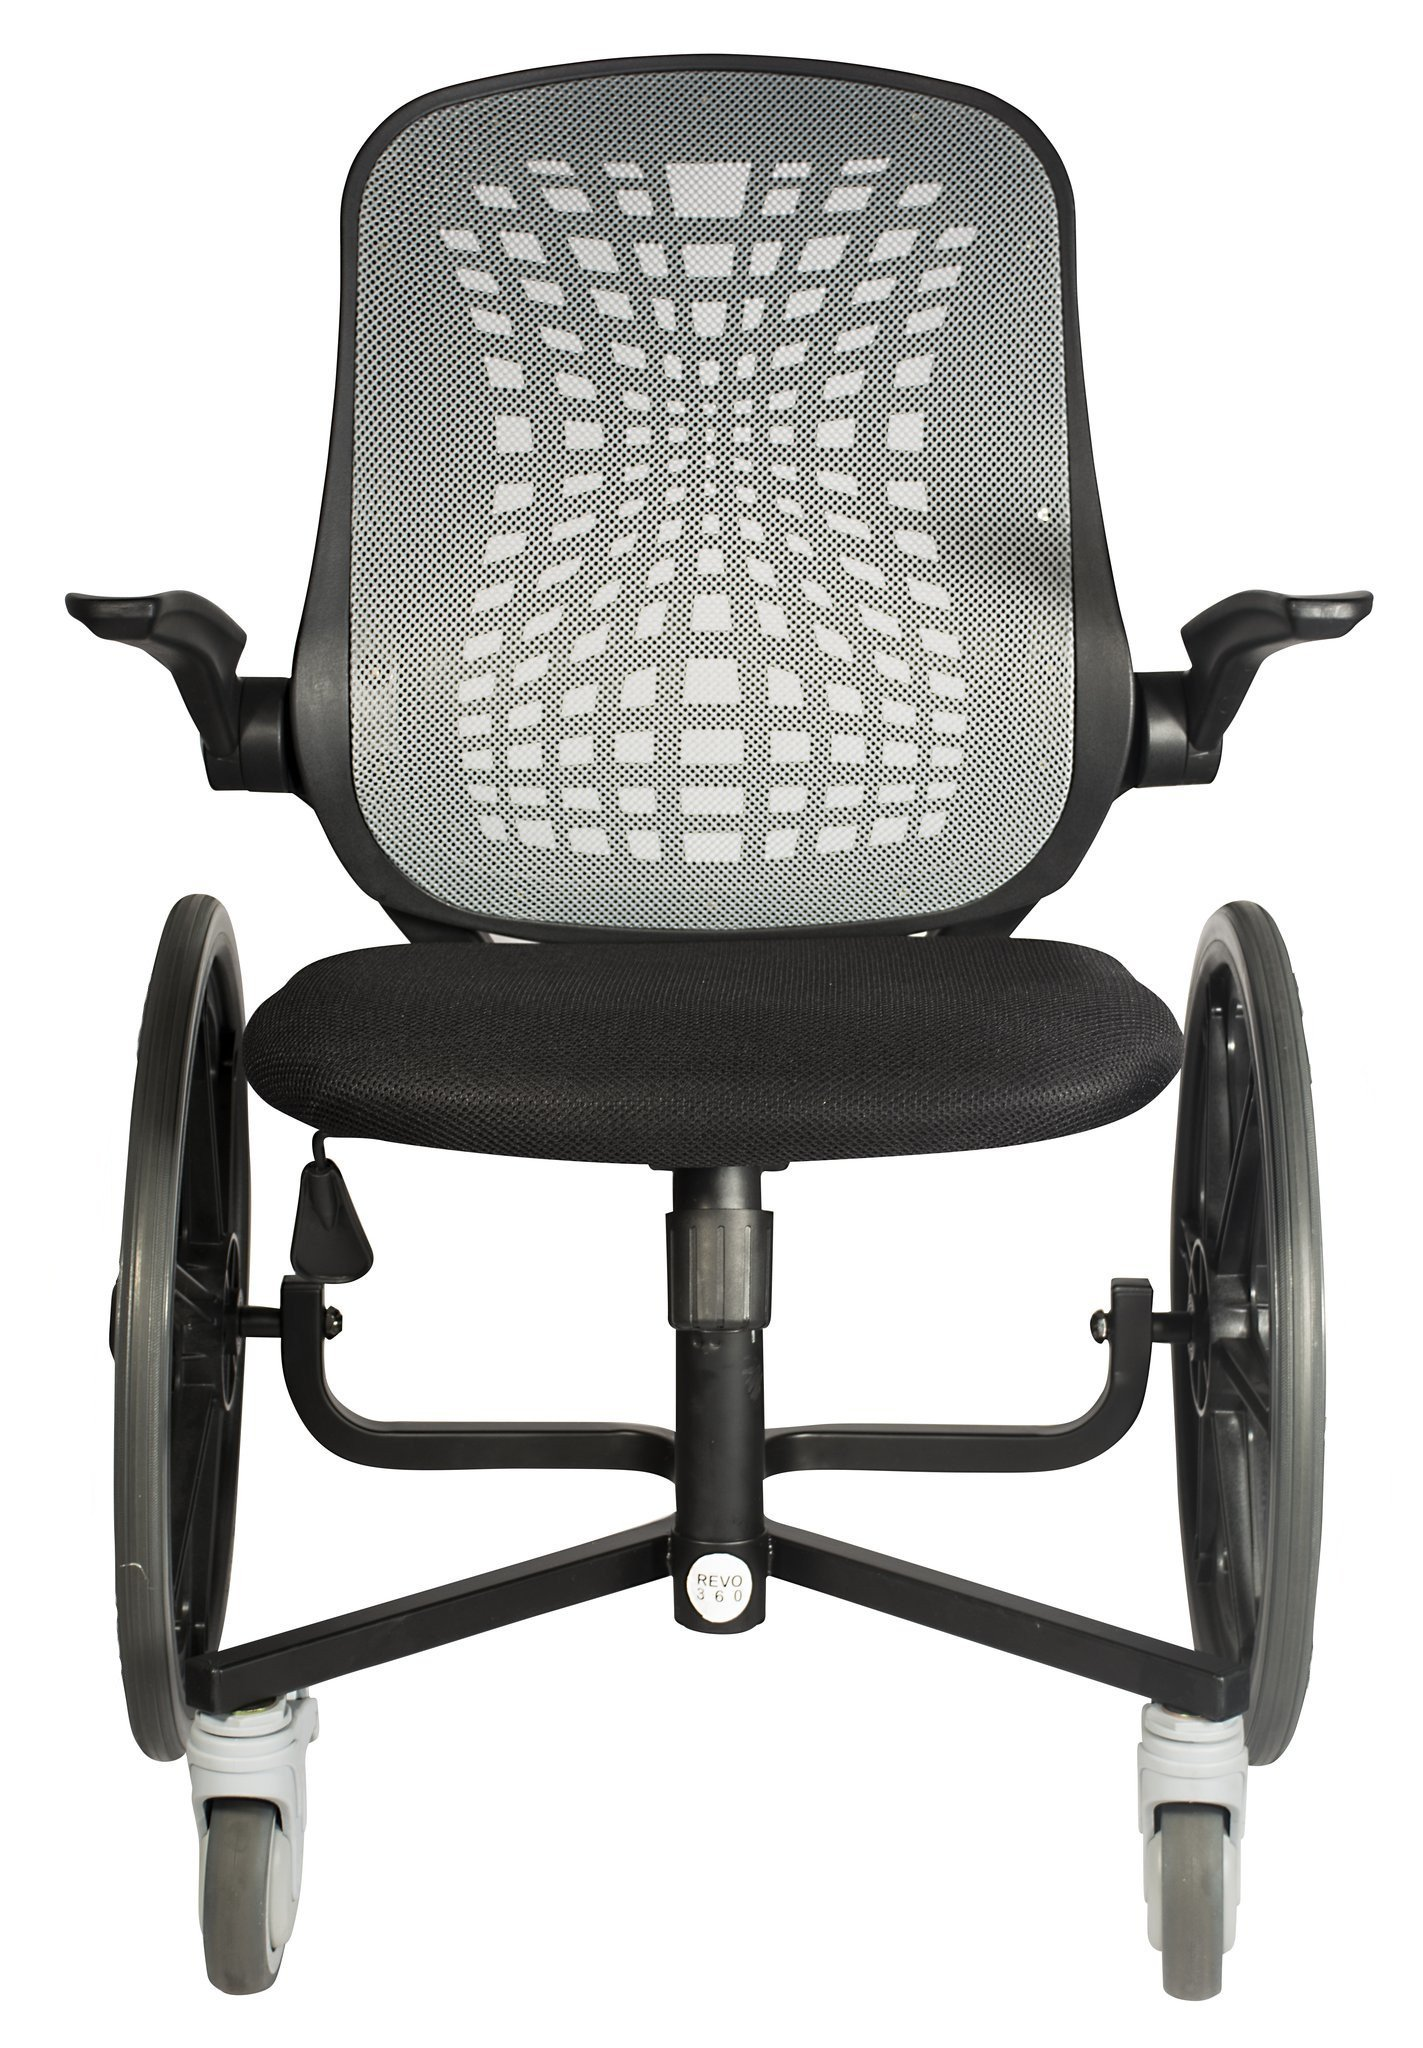 Home & Office Wheelchair REVO 360 Daily Living